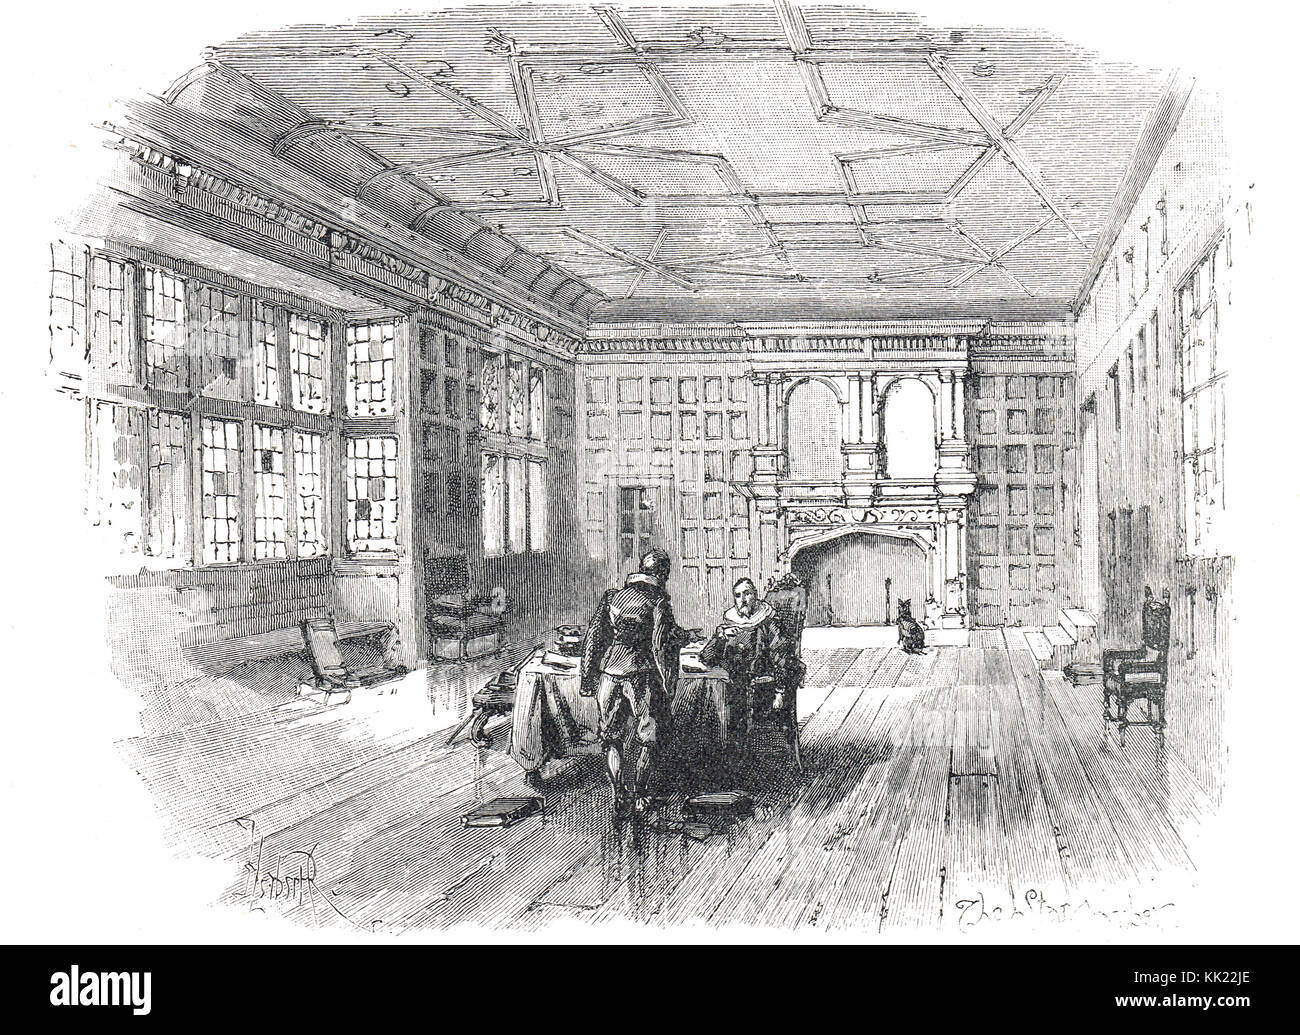 Interior of The Star Chamber in the 17th Century, - Stock Image